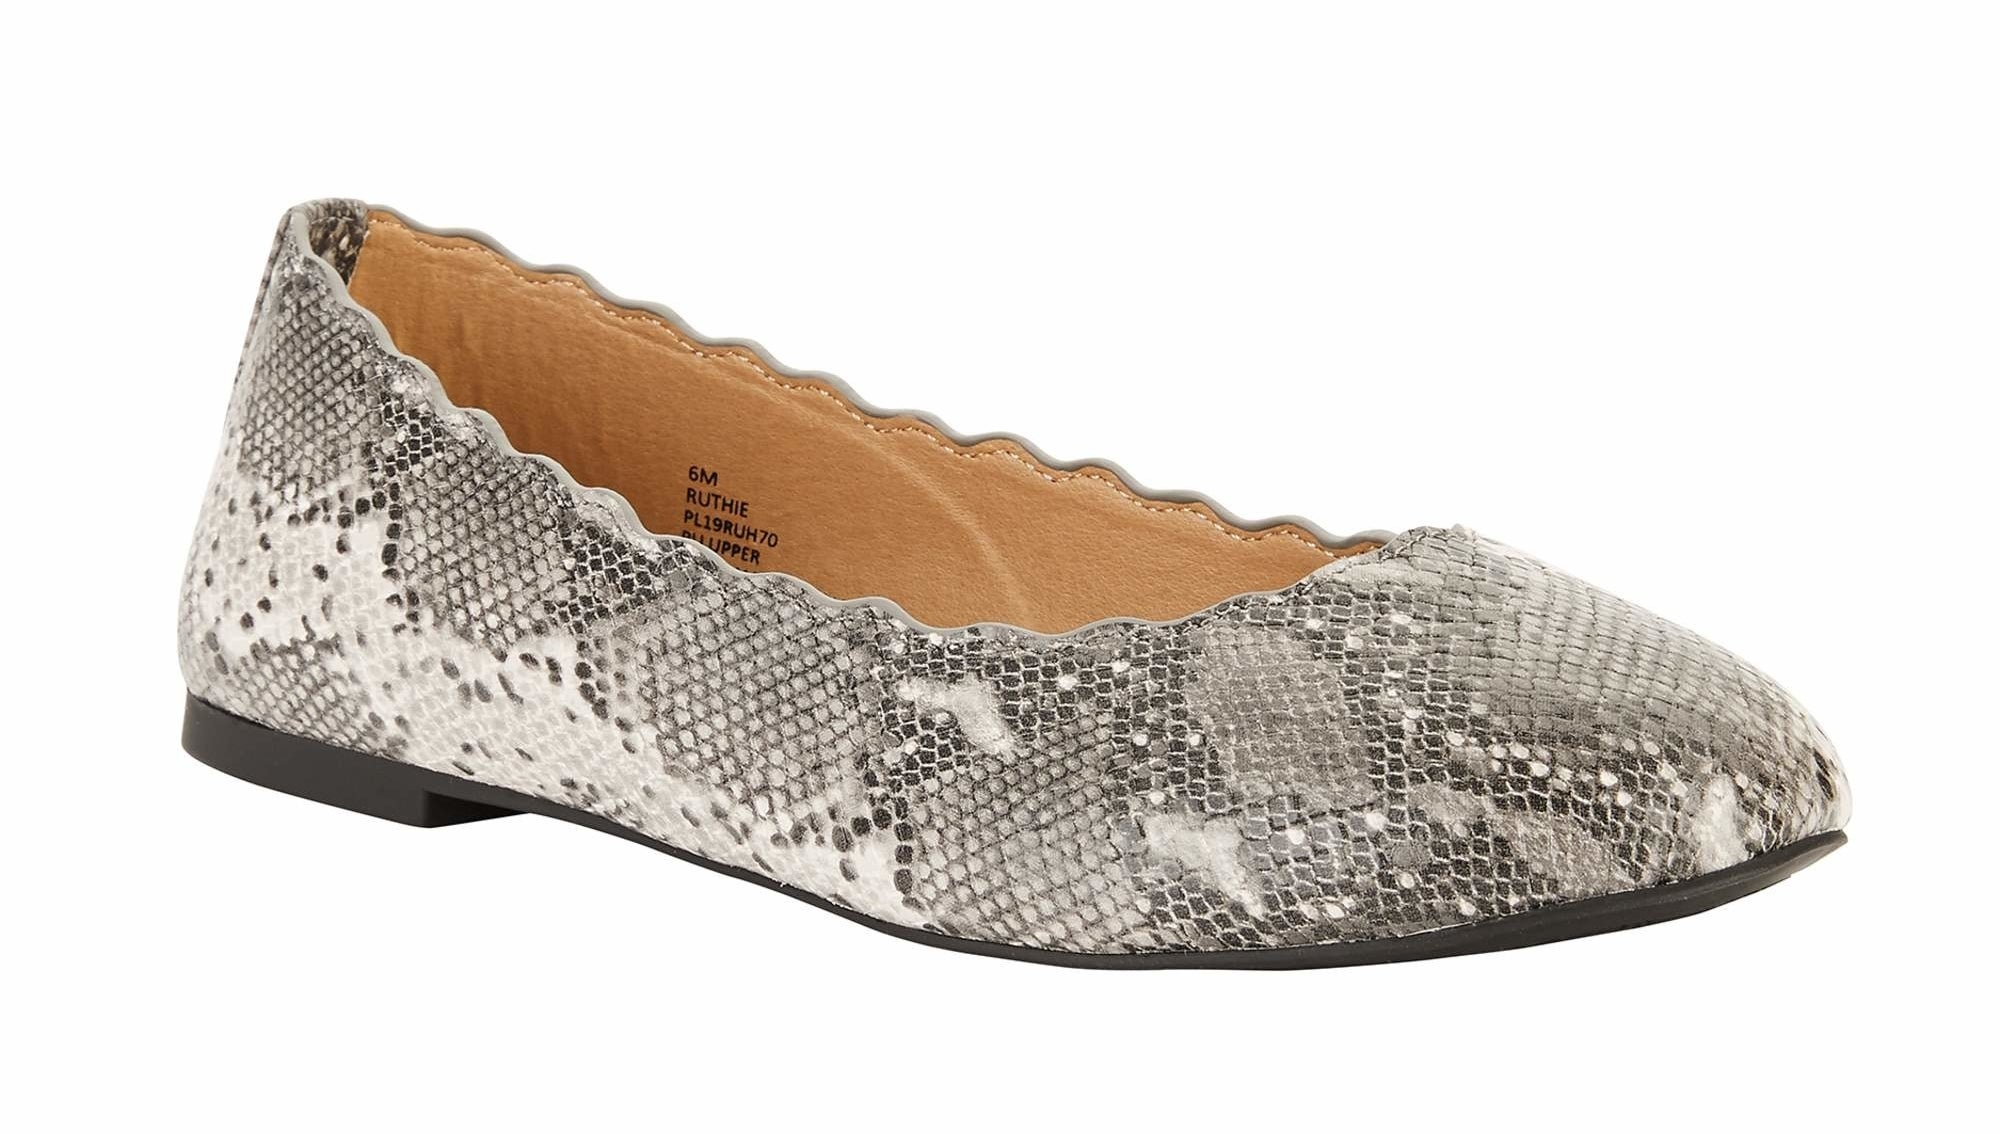 scalloped edge faux suede flats in snakeskin print